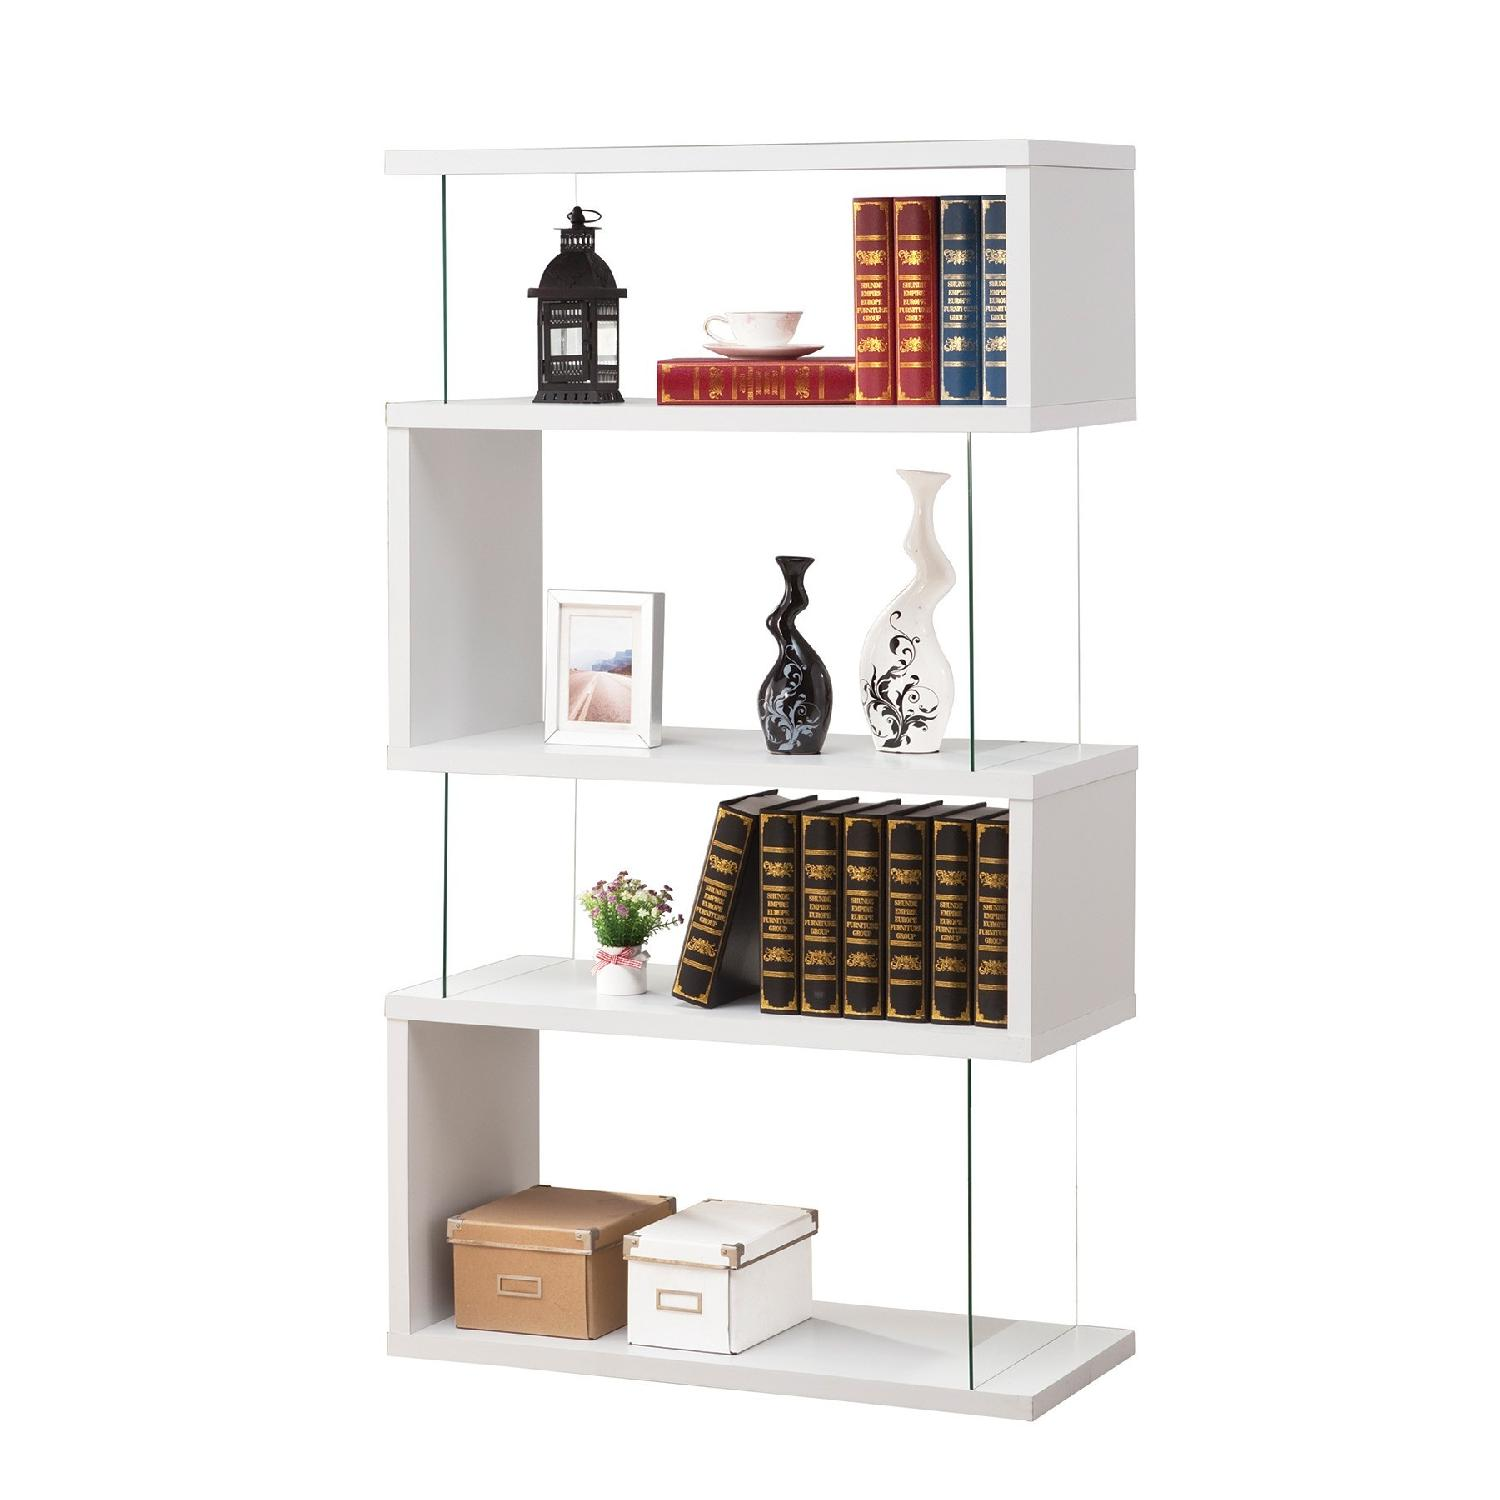 White Asymmetrical Bookshelf w/ Snaking Design & Partial Gla